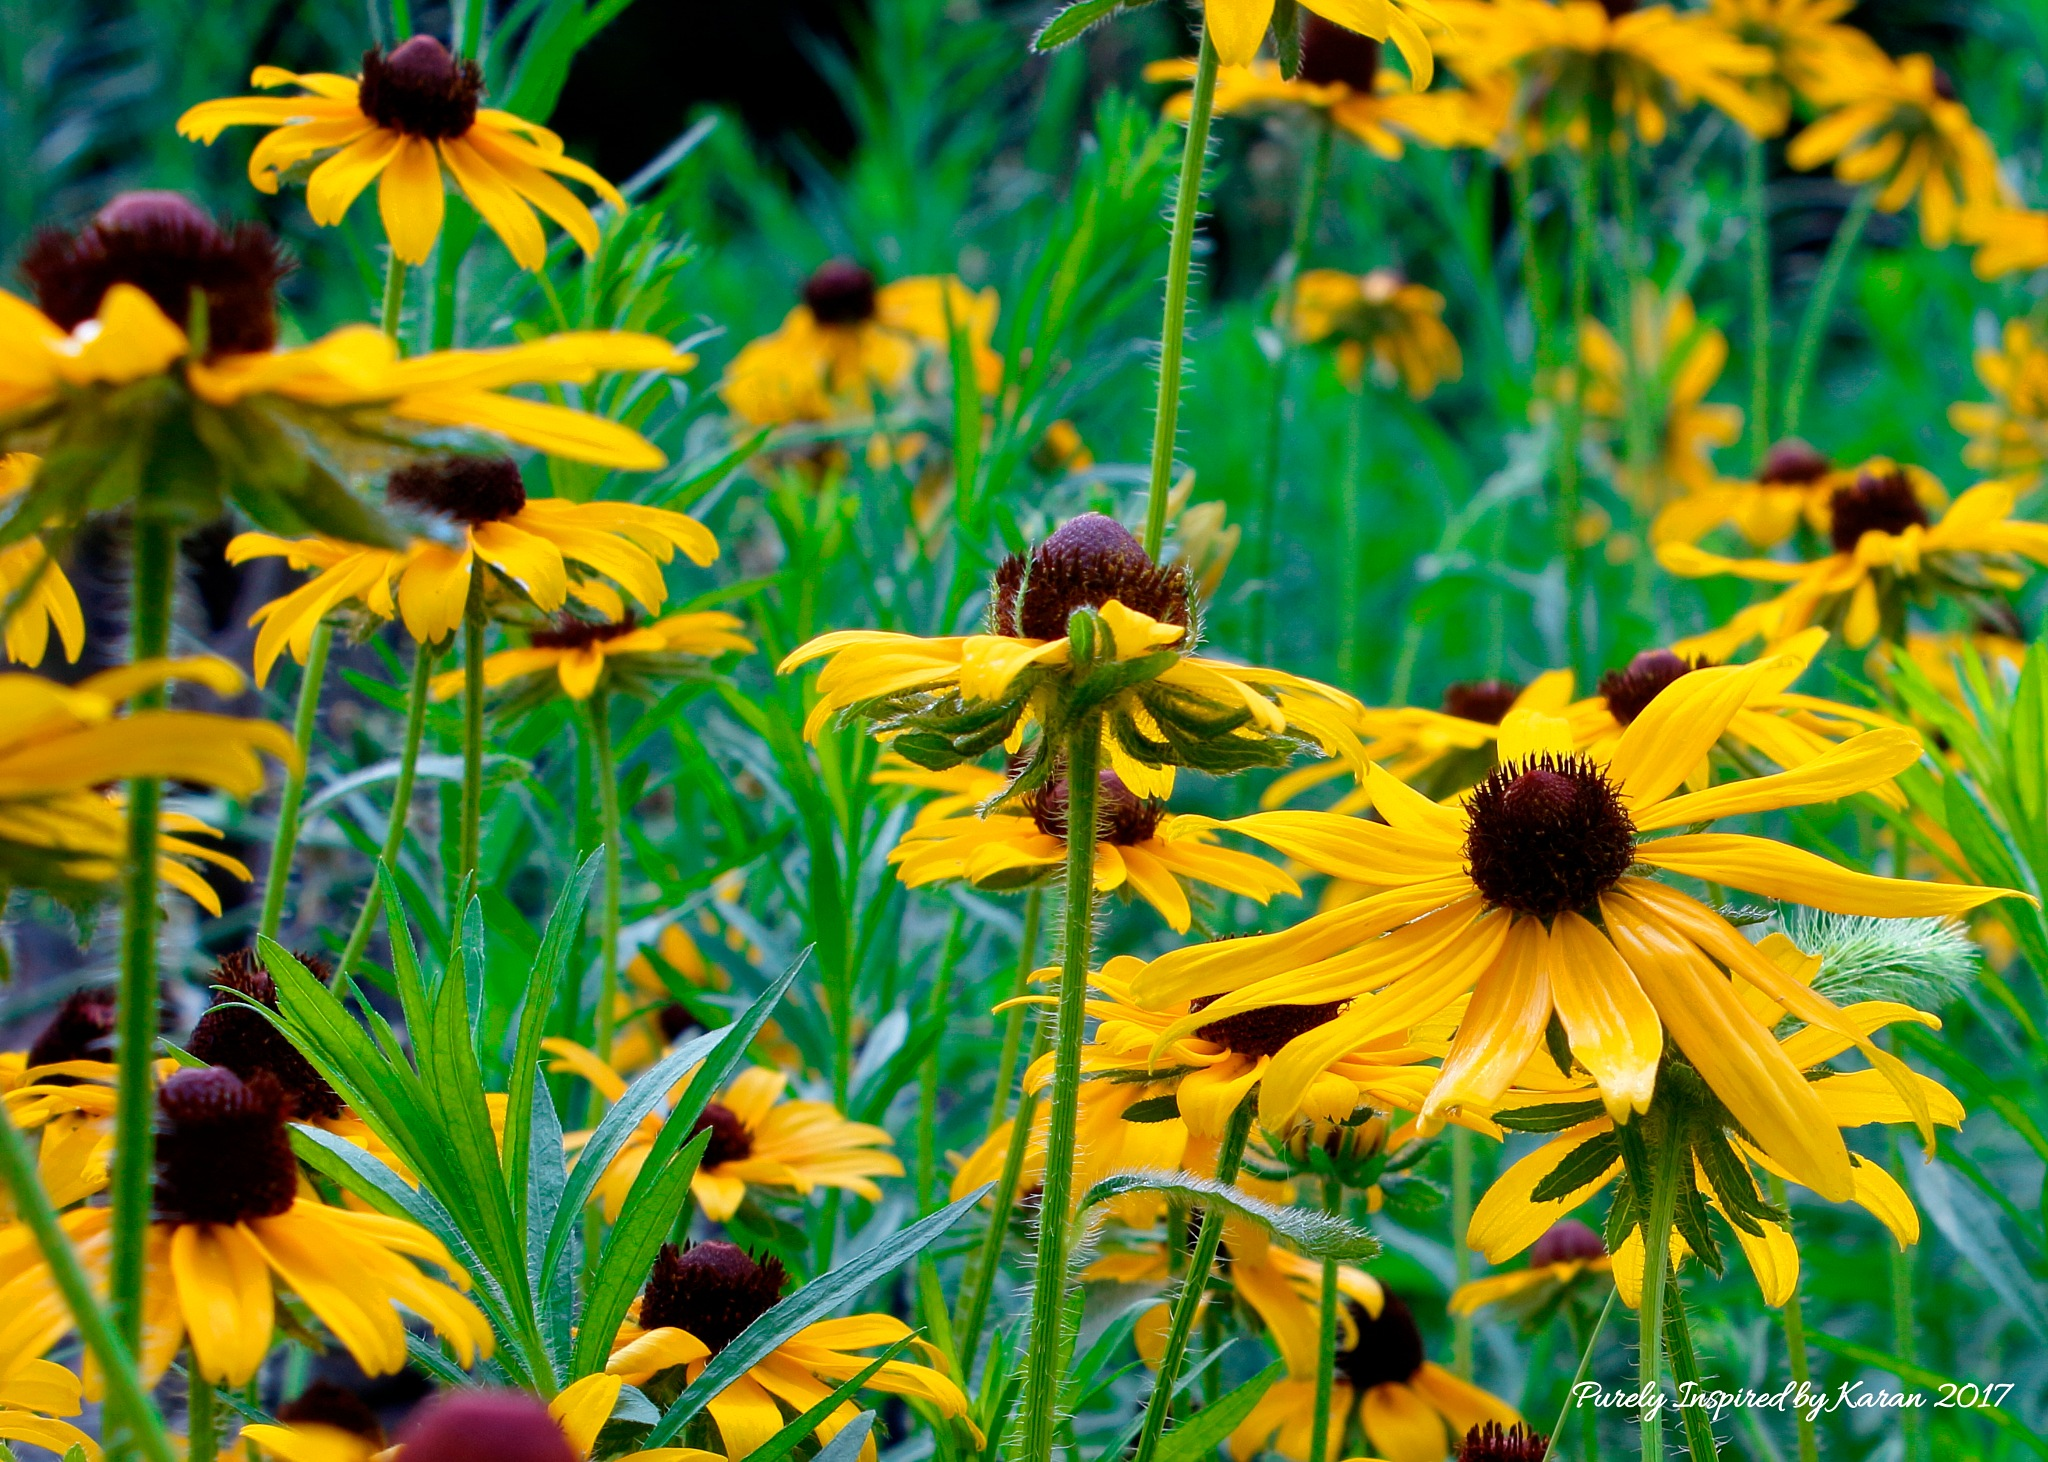 Field of Black Eyed Susans by Purely Inspired by Karan